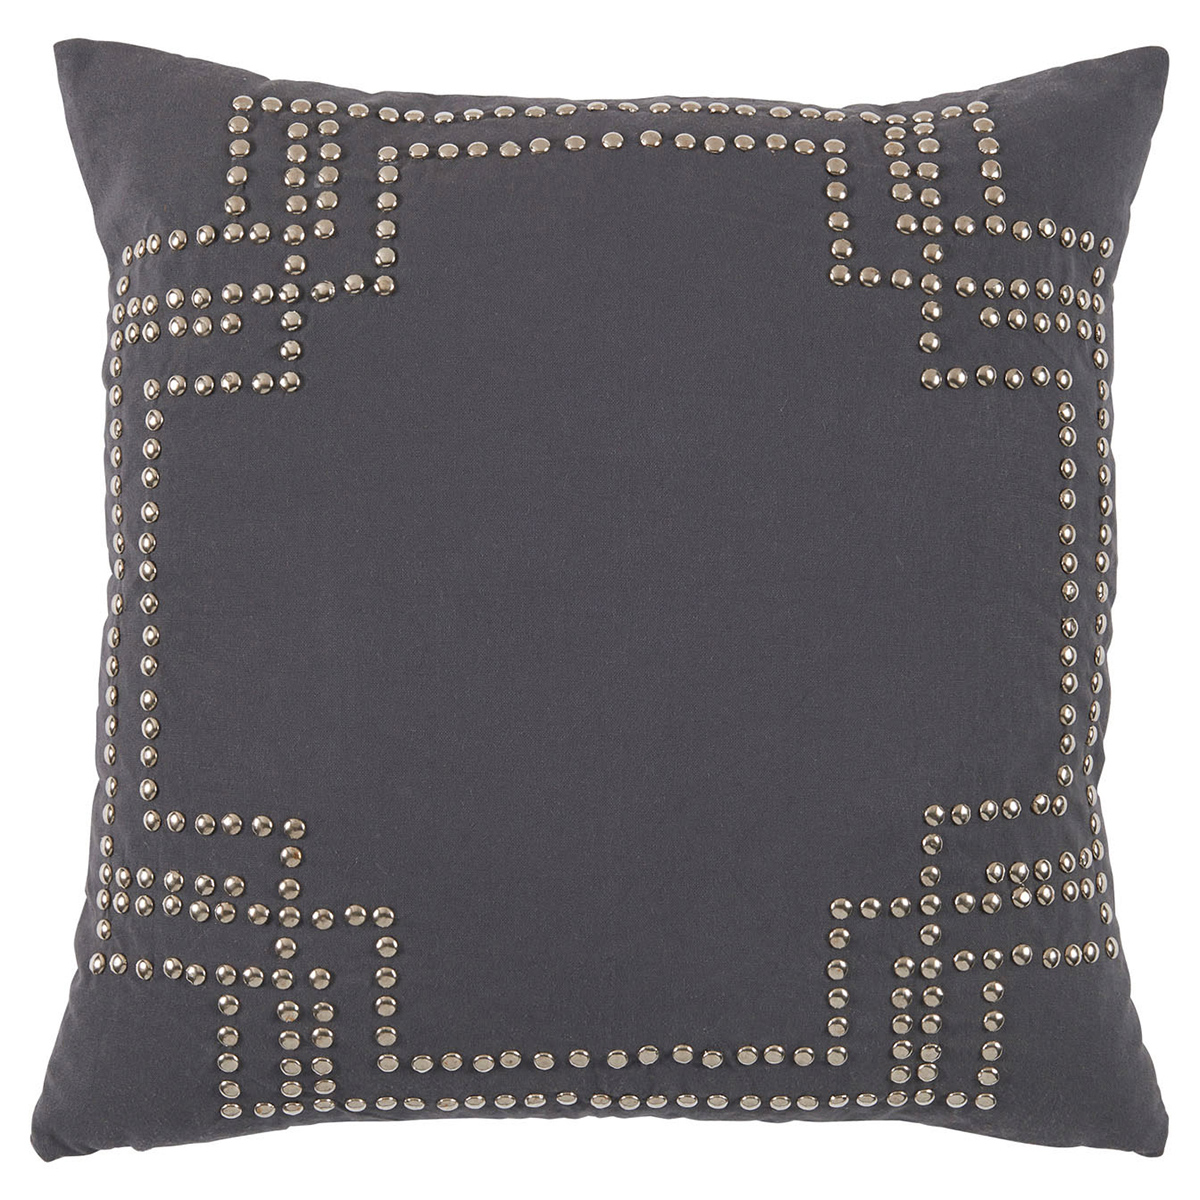 Hadid Hollywood Regency Silver Stud Charcoal Pillow - 20x20